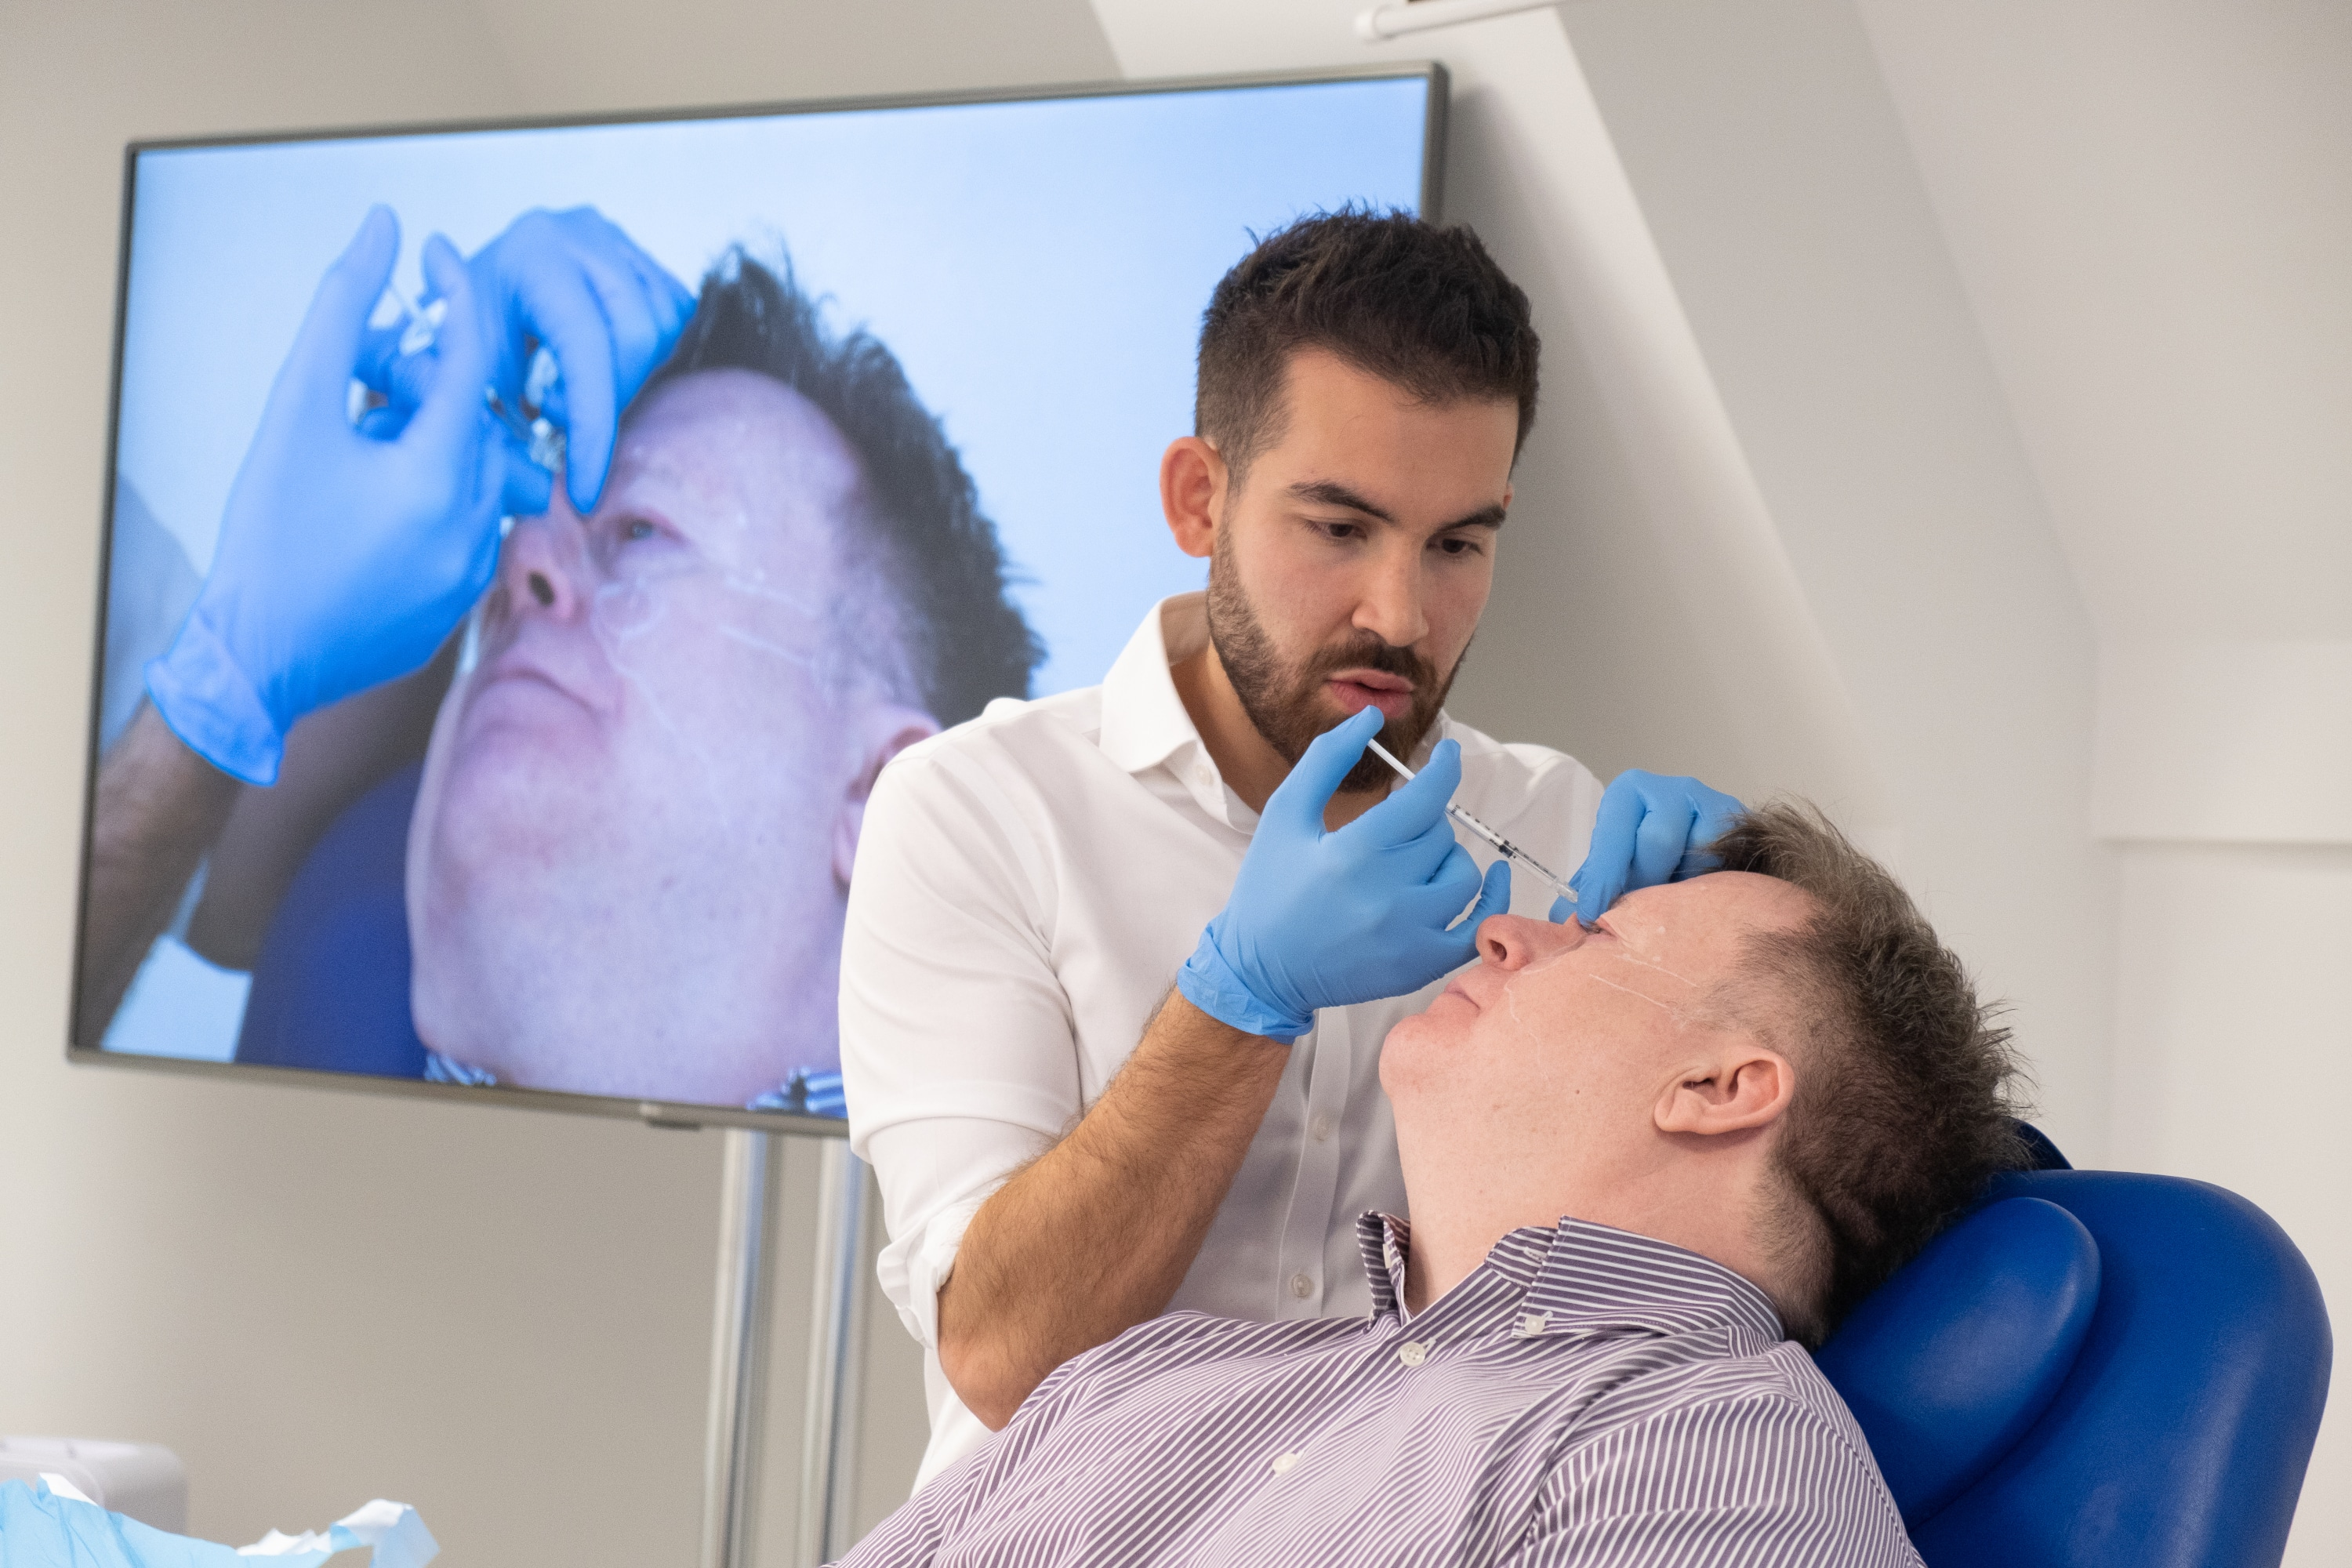 Level 7 Diploma - Dr Tristan Mehta hosts an Observation Day treating a patient with botox